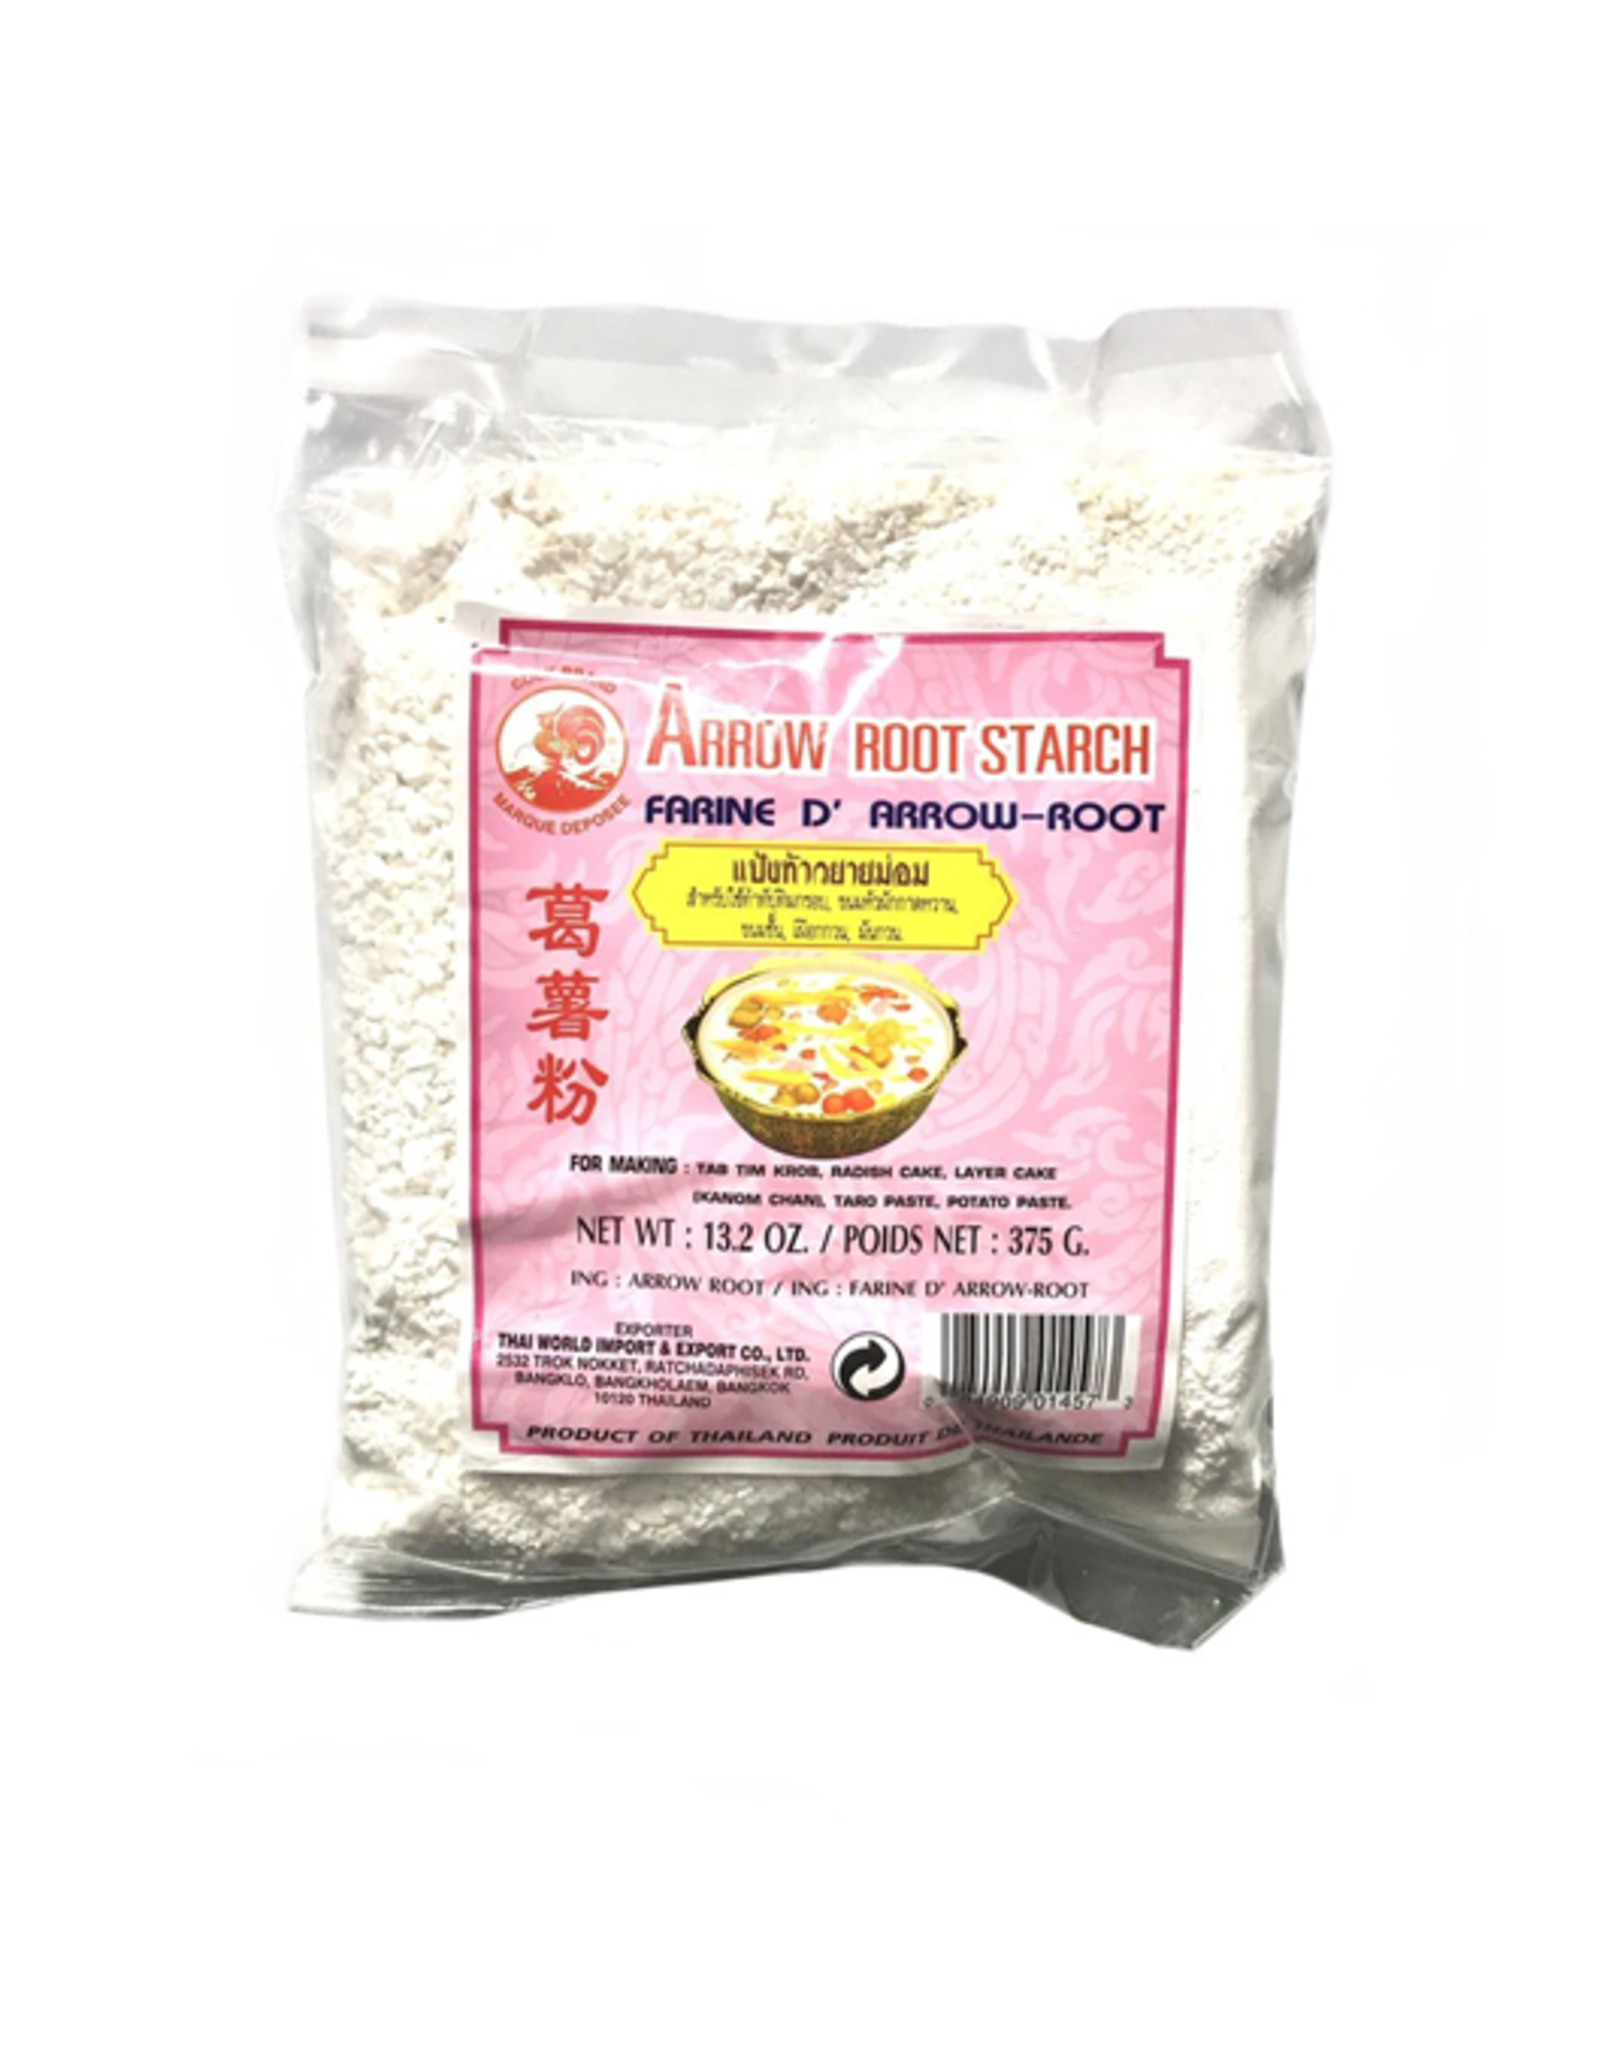 Cock Brand Arrow Root Starch